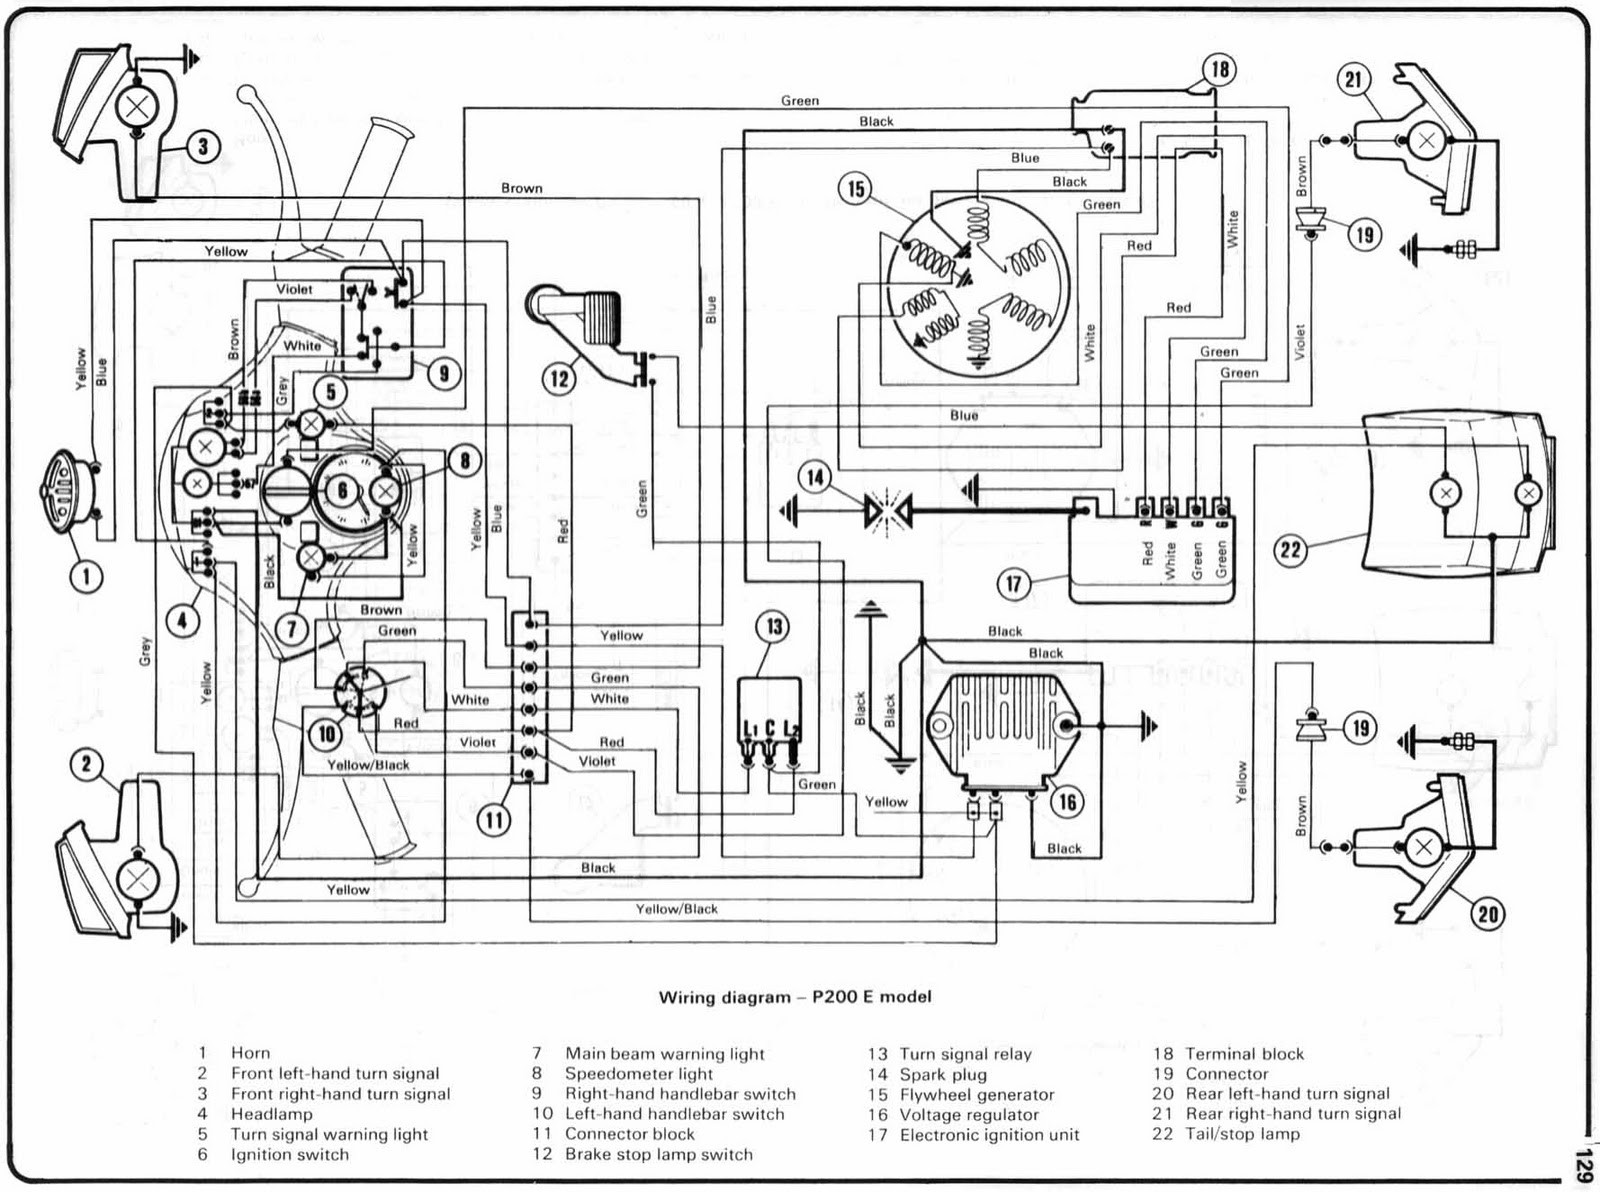 Vespa+P200+E+Model+Wiring+Diagram wiring diagrams 911 vespa p200 e model wiring diagram vespa p200 wiring diagram at bakdesigns.co